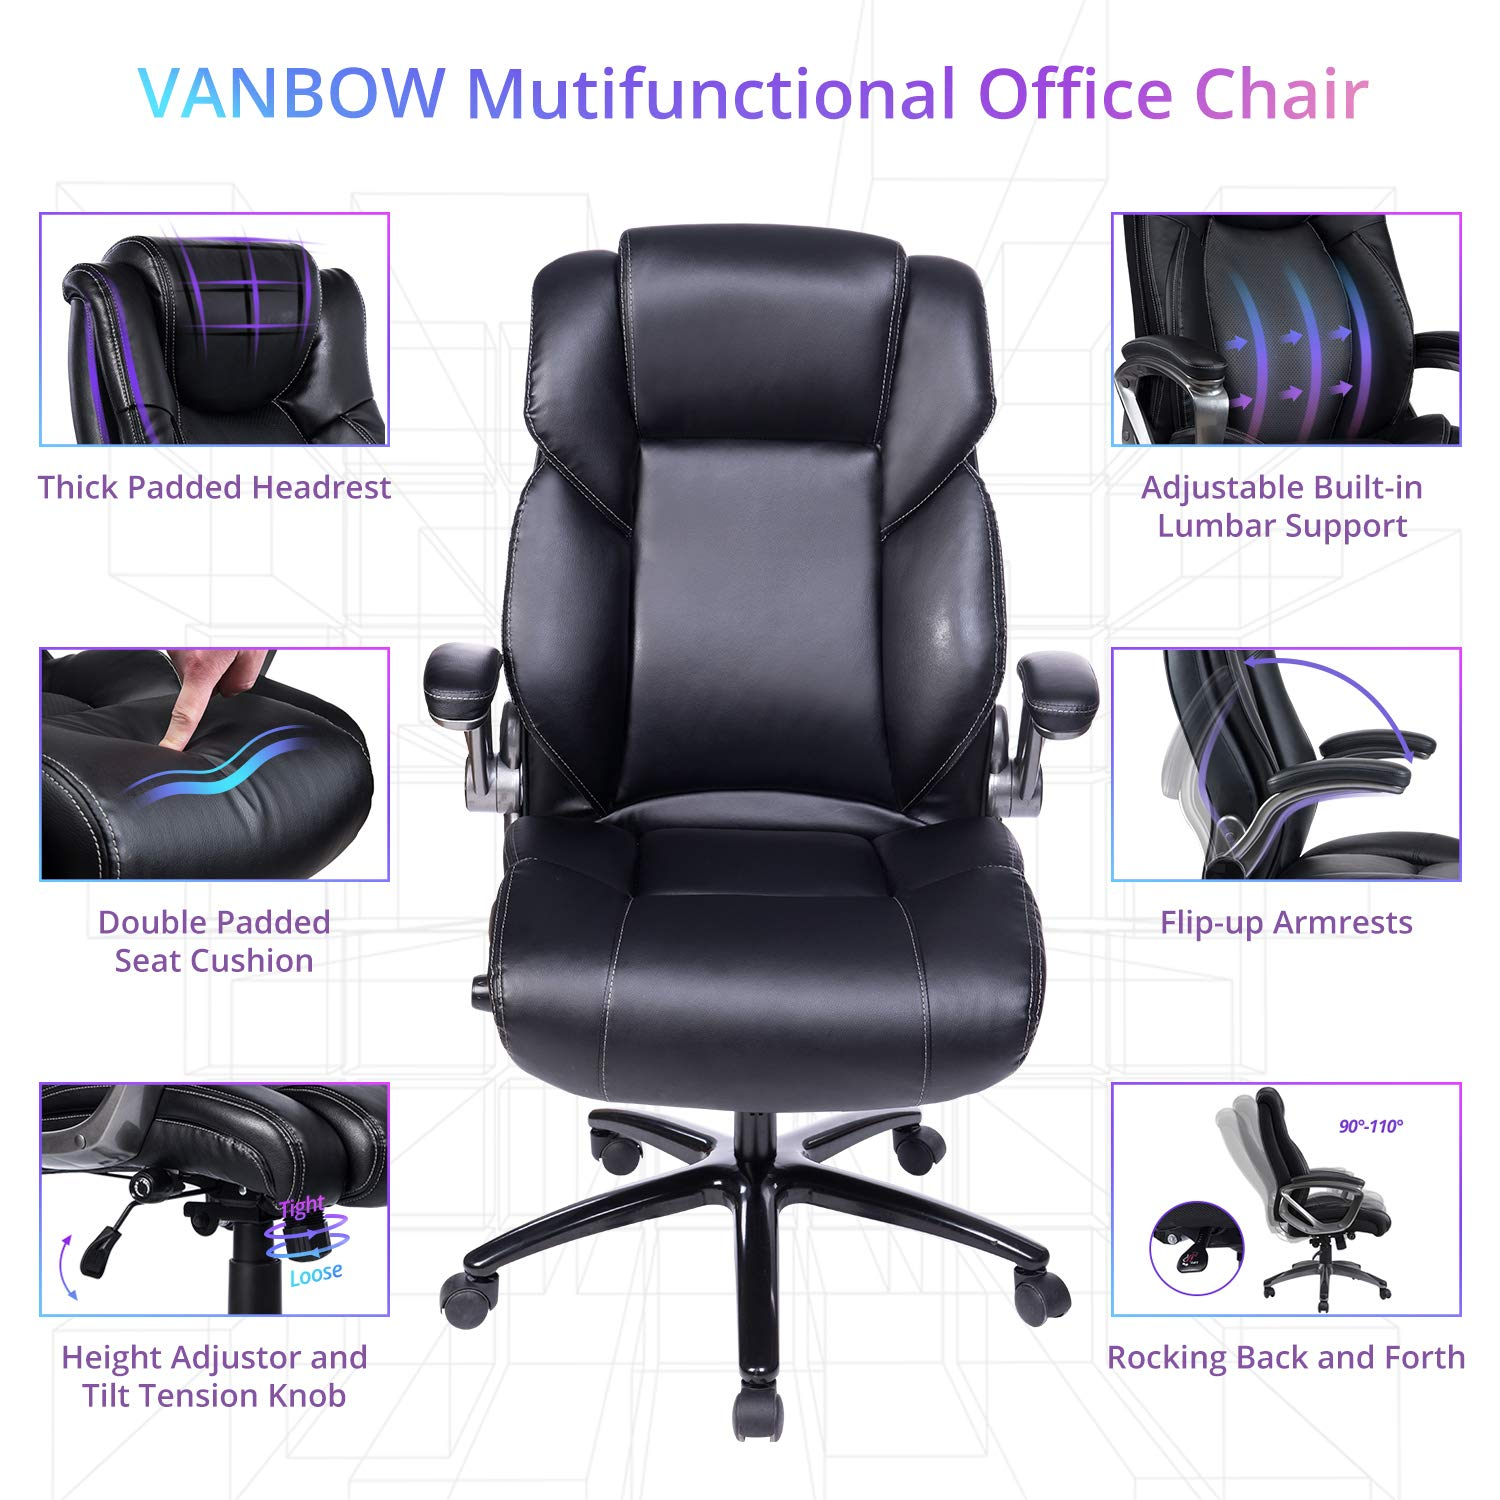 VANBOW Office Chair, Executive Computer Desk Task Swivel High Back Chair with Metal Base- Adjustable Built in Lumbar Support, Tilt Angle and Flip-Up Arms, Black by VANBOW (Image #3)